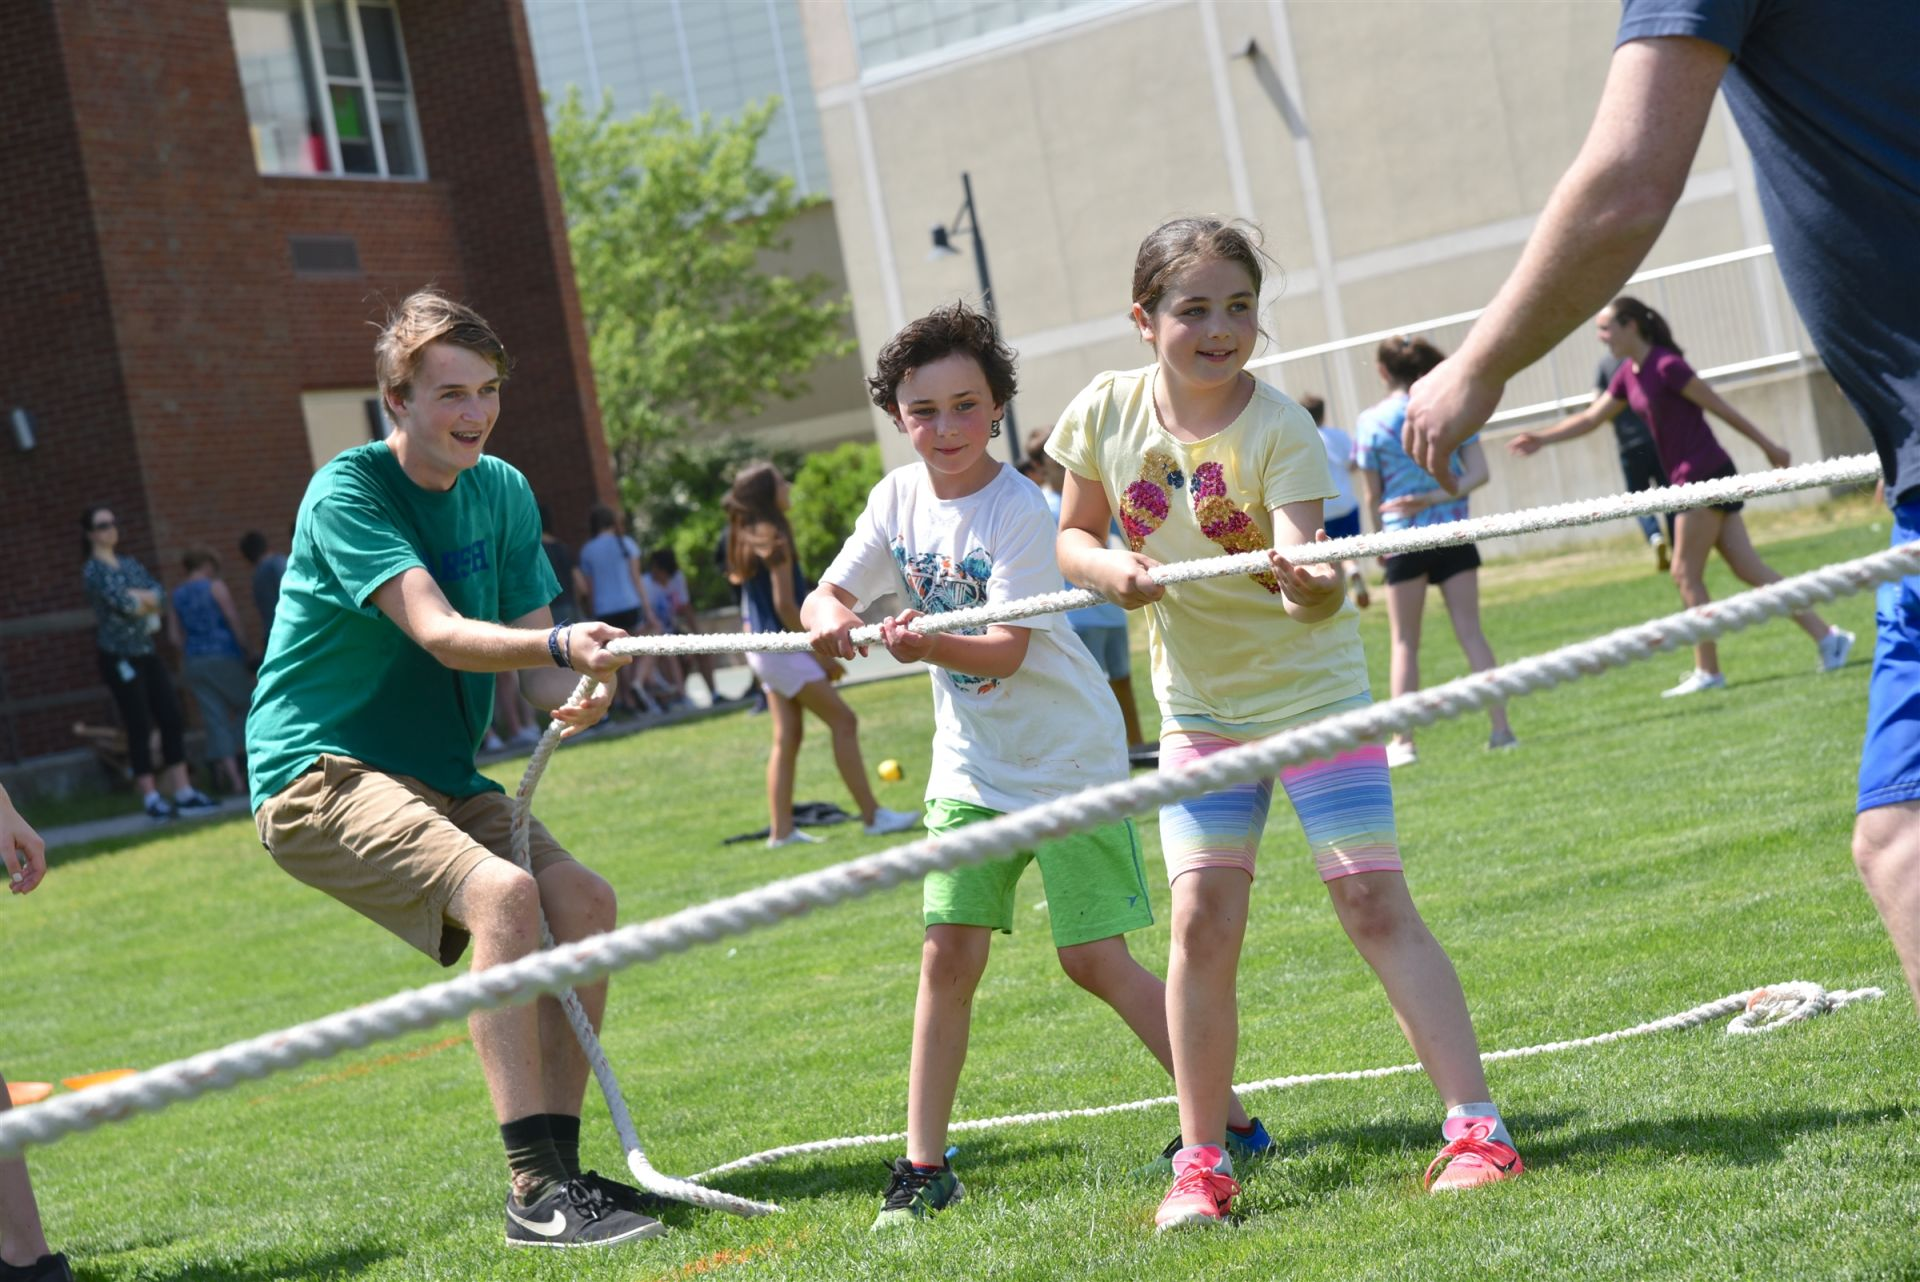 A tug of war with Lower School students